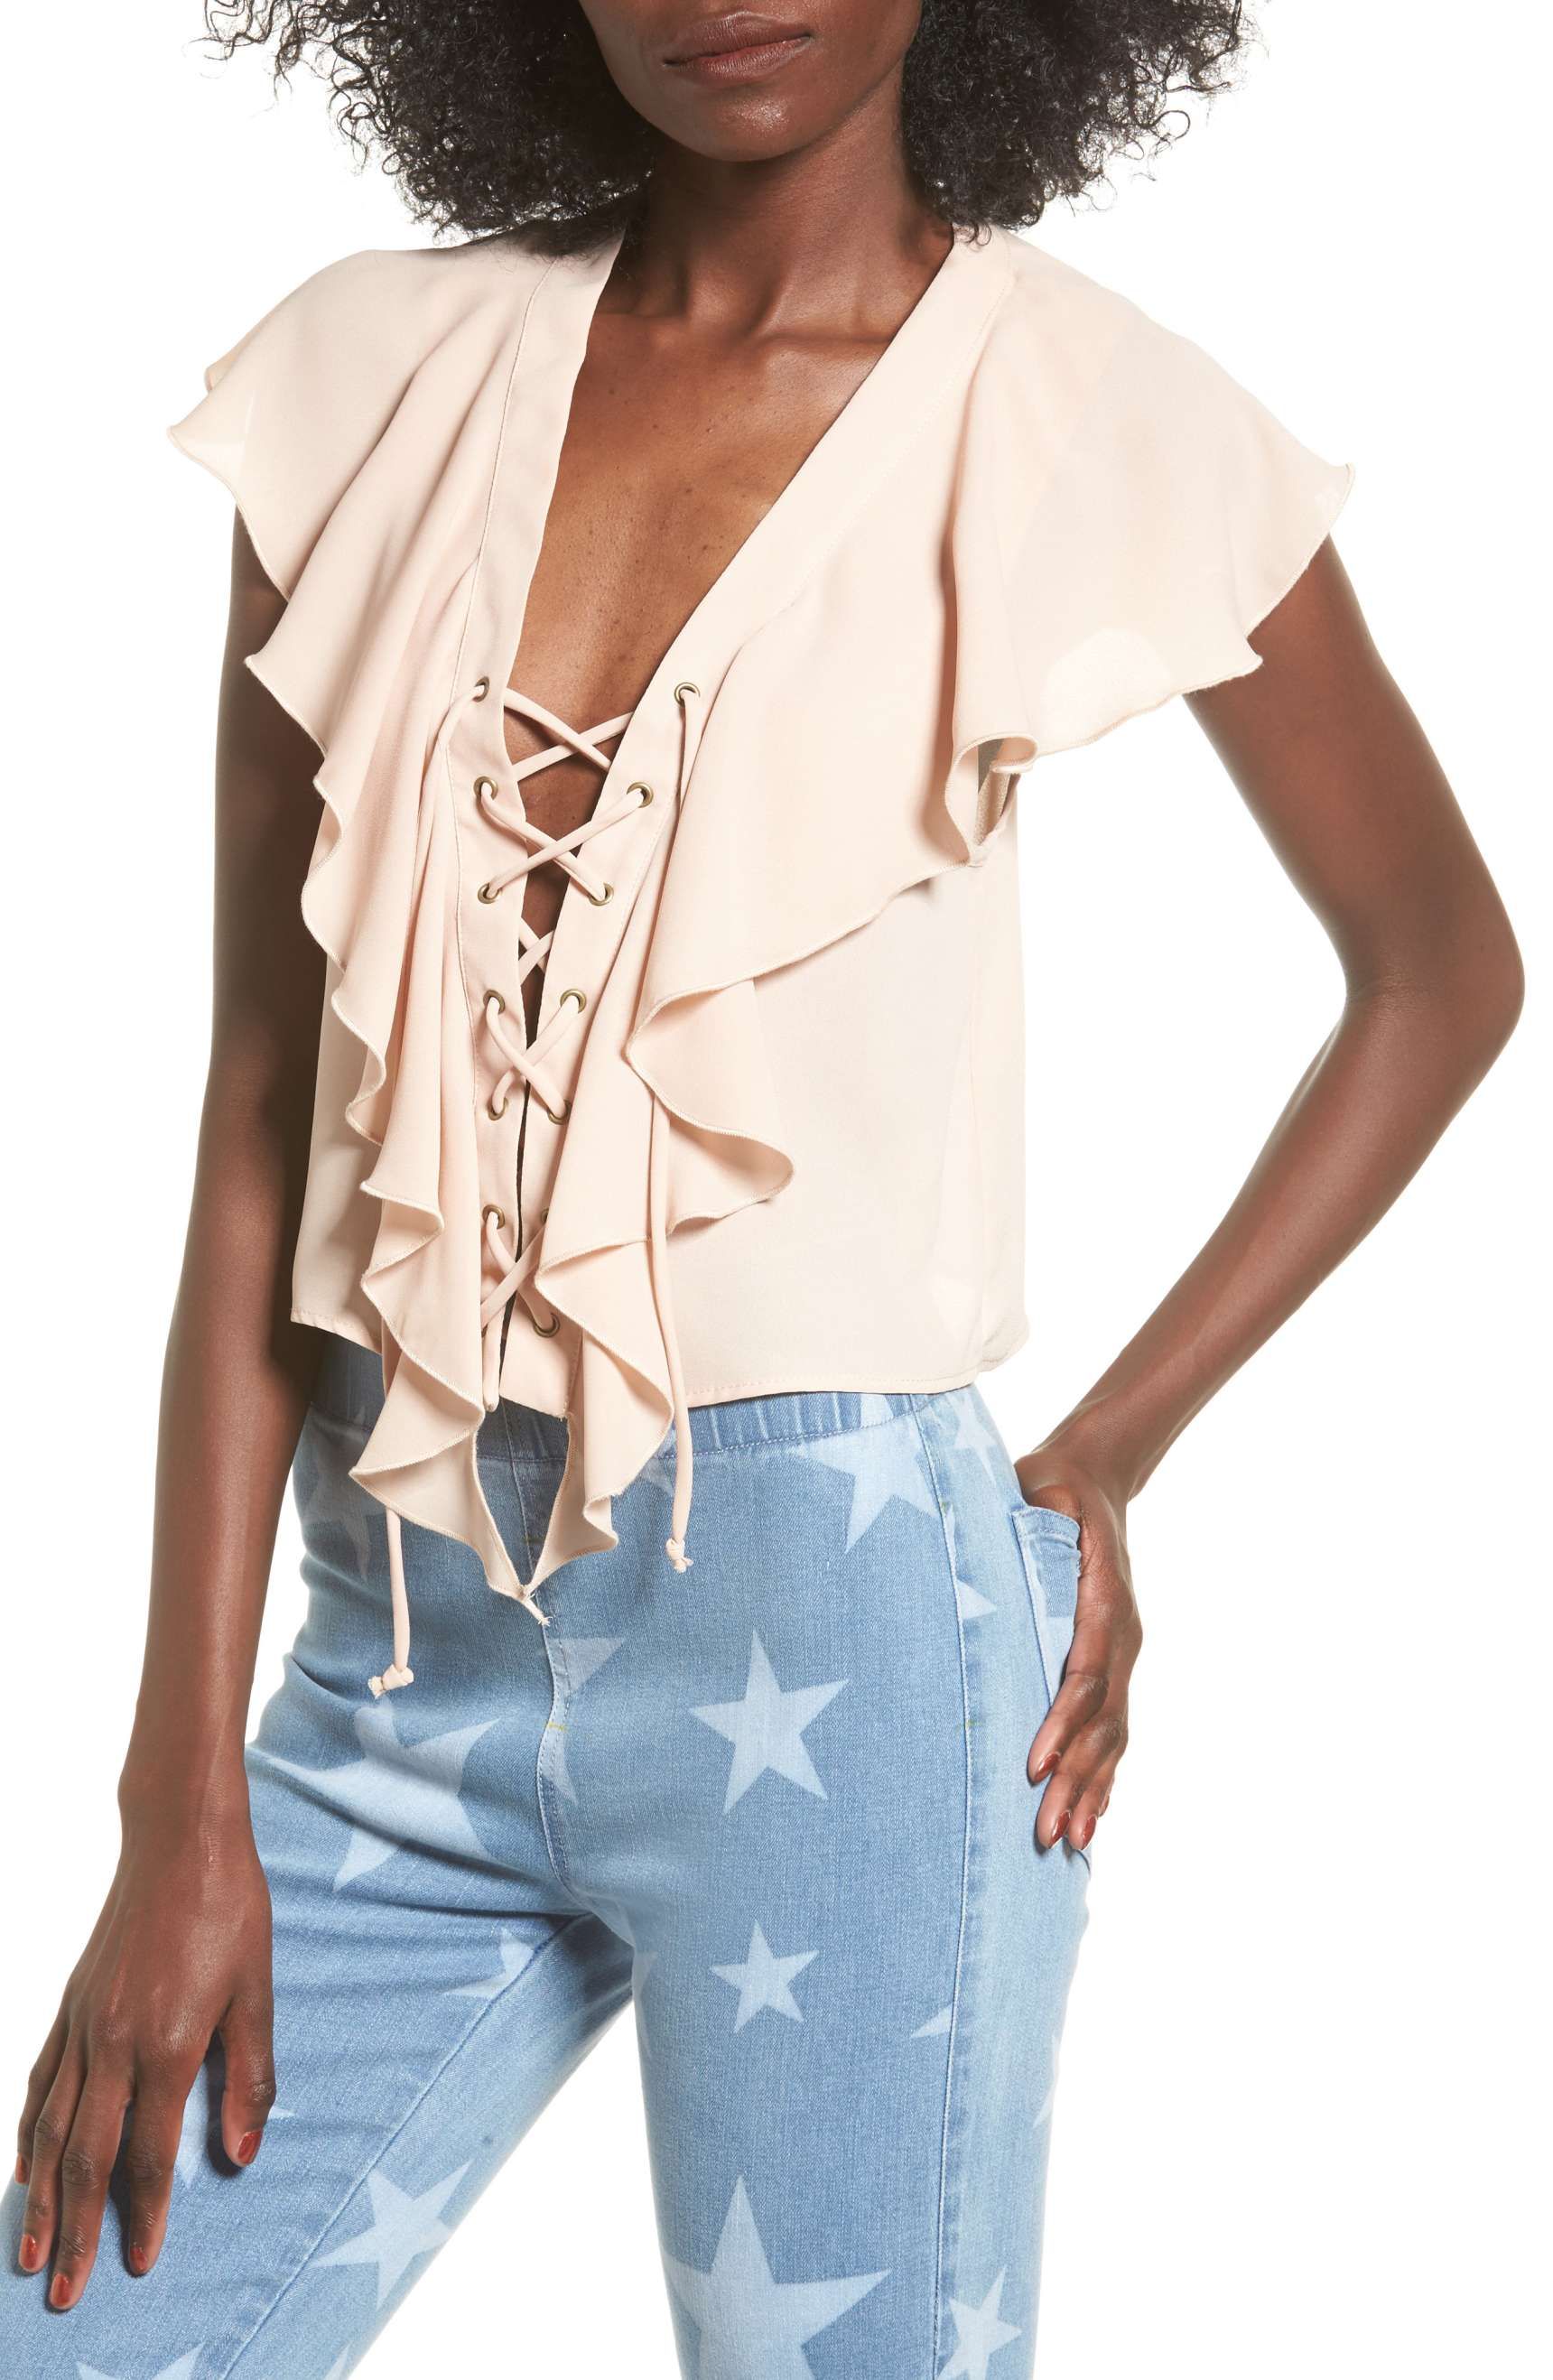 d715b5af08cef0 The Best Going-Out Tops to Wear With Jeans - theFashionSpot